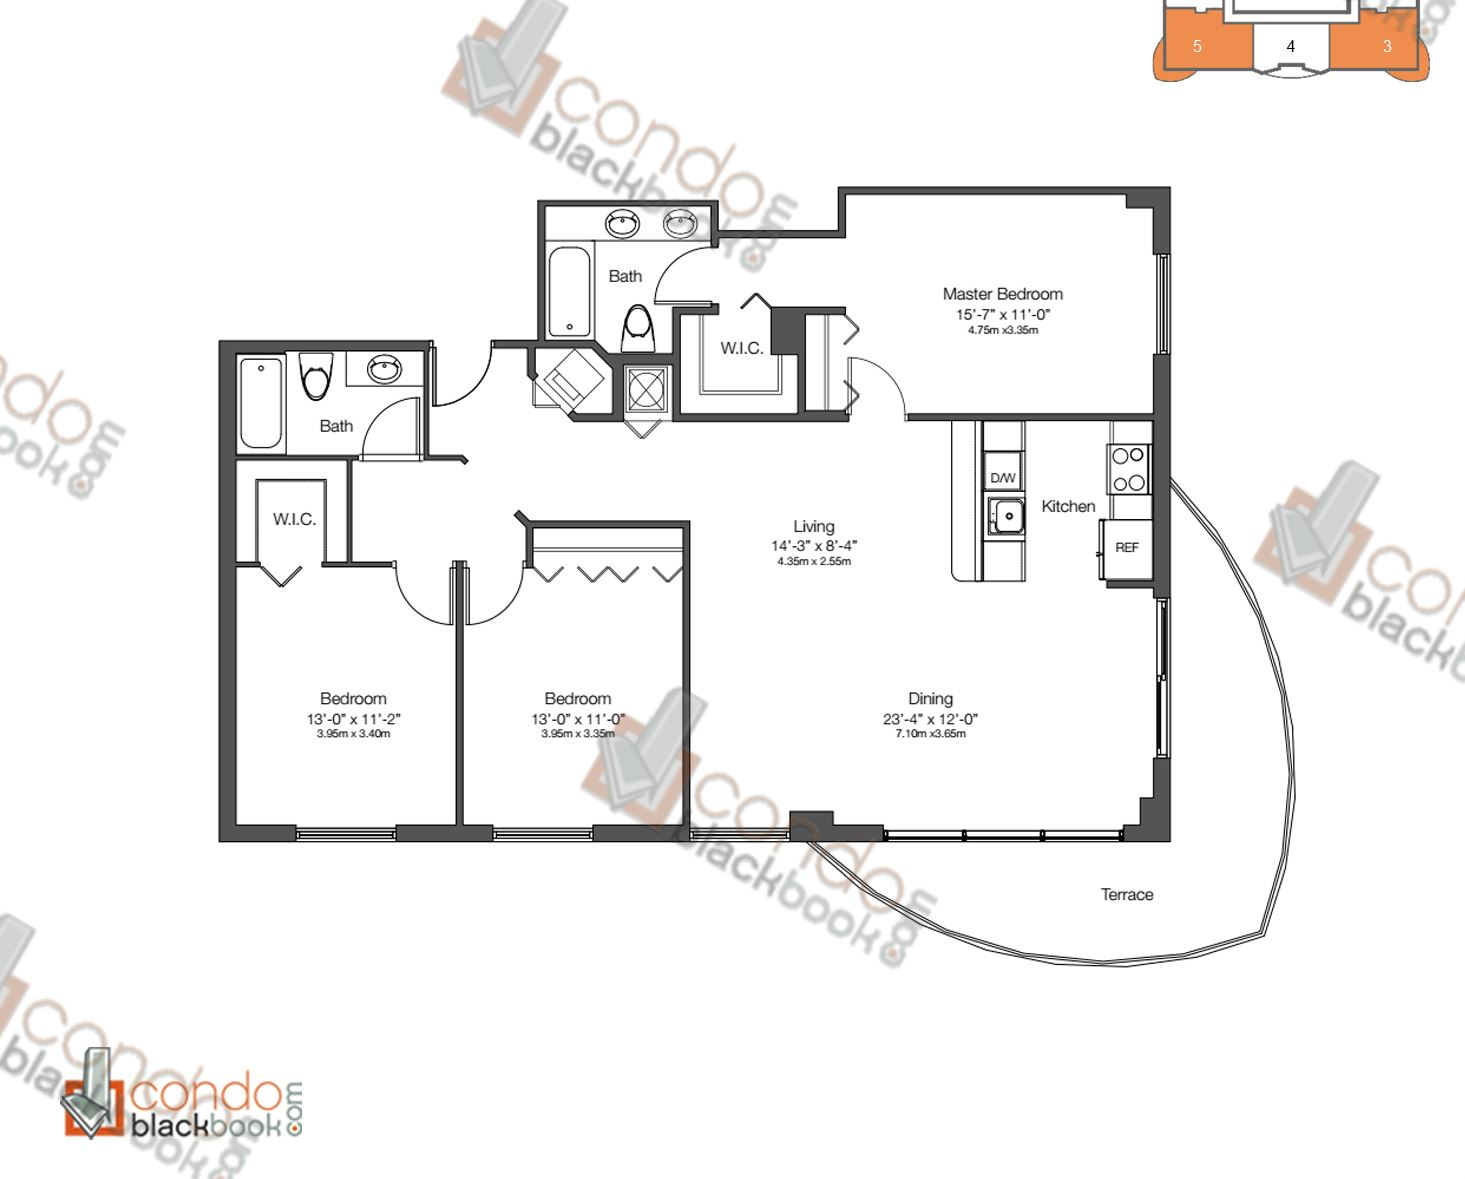 Floor plan for 23 Biscayne Edgewater Miami, model UNIT 3 & 5, line 03, 05, 3/2 bedrooms, 1,403 sq ft